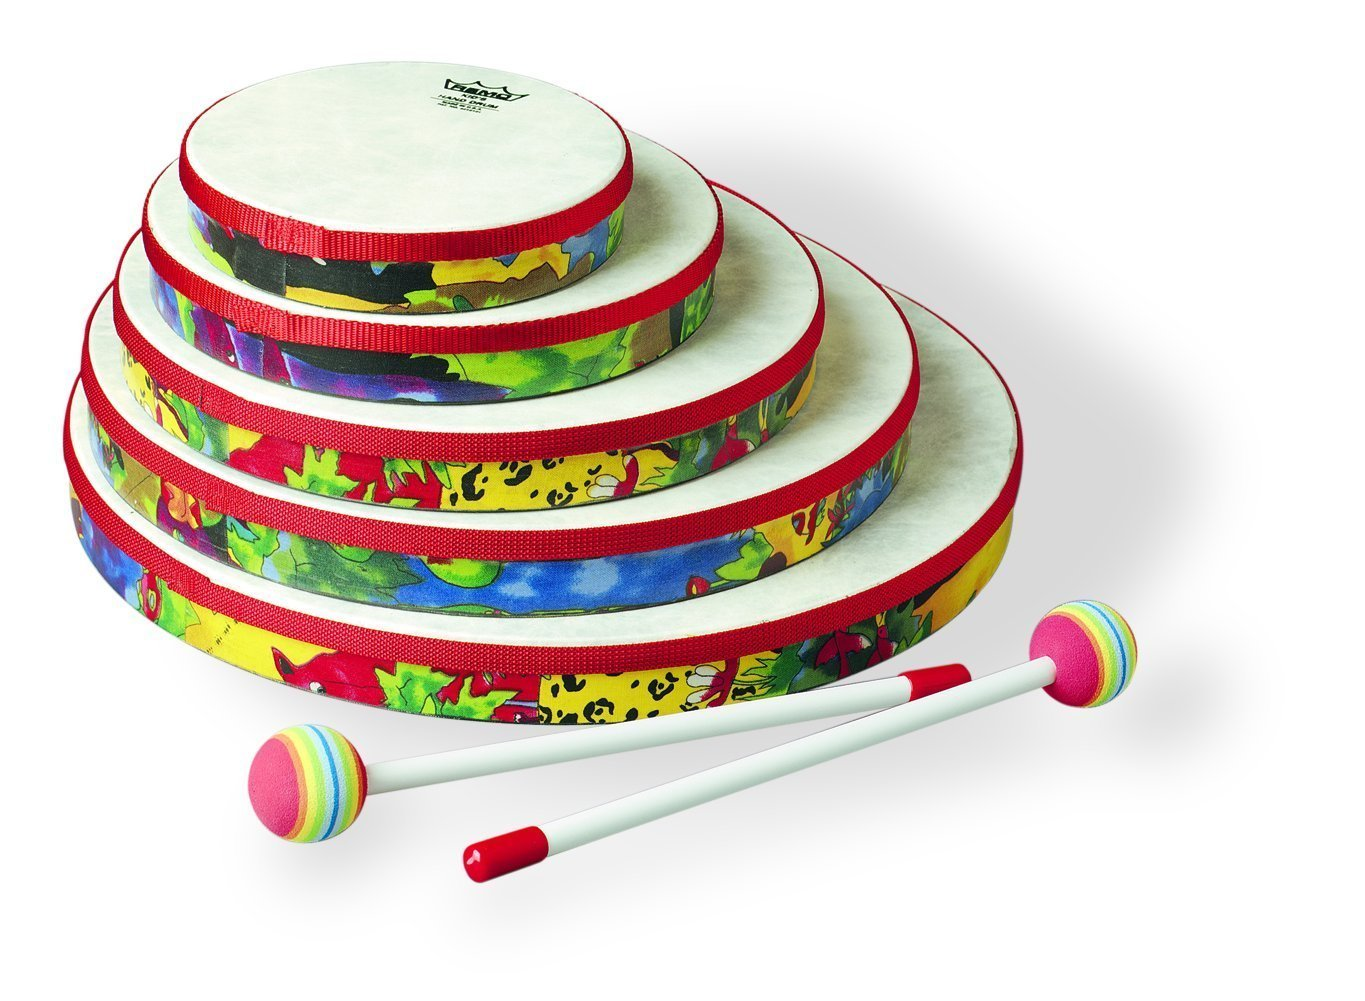 Remo Kid's Percussion Set of 5 Hand Drums (6 - 14 in) in Rainforest Design (Age 5+)